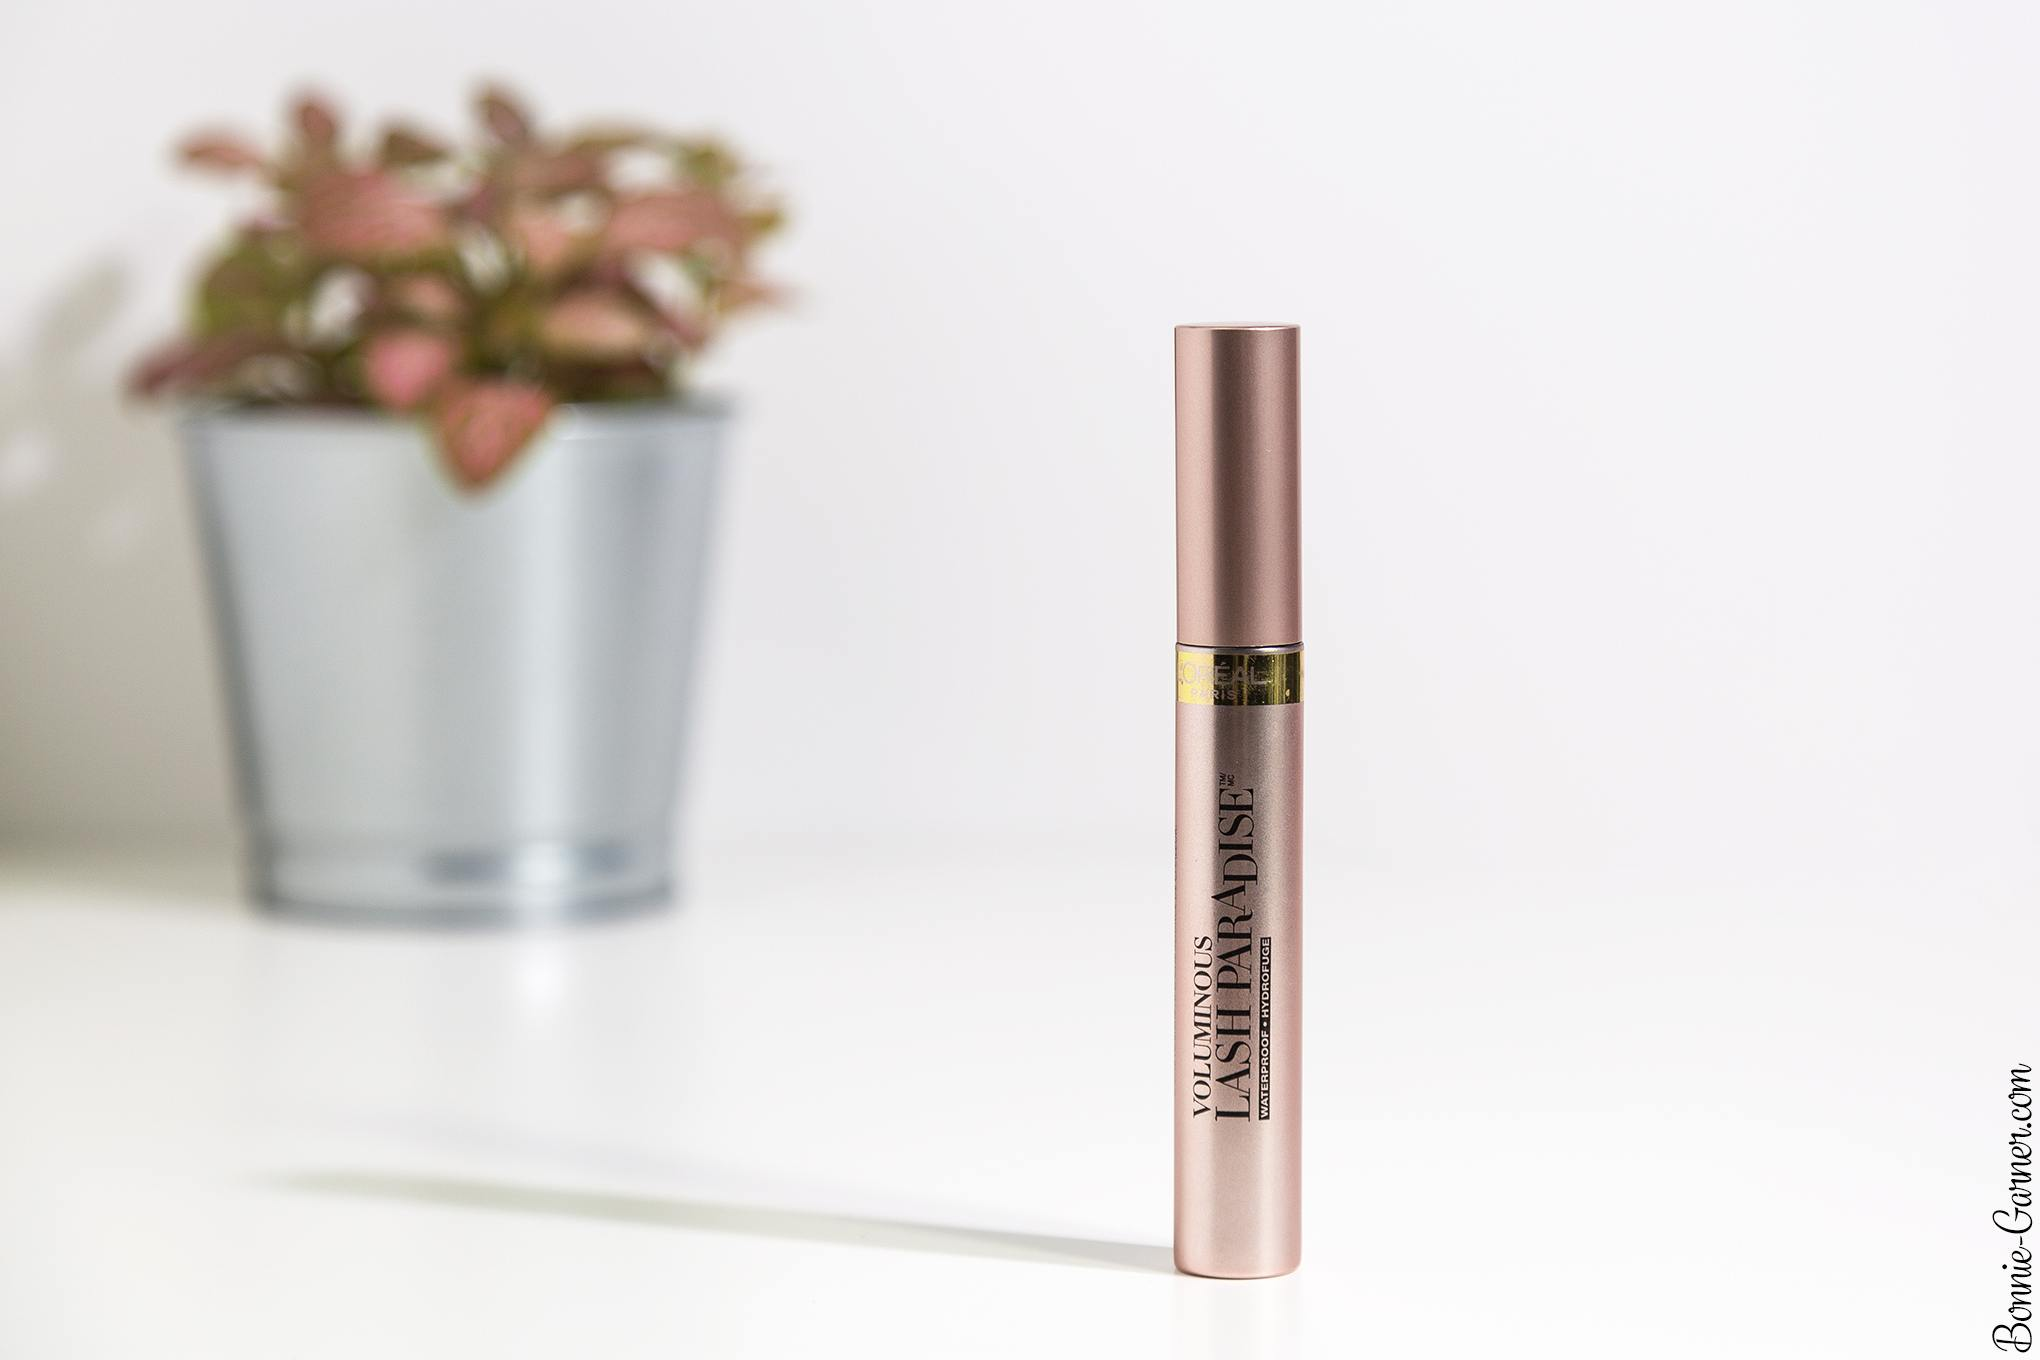 L'Oréal Voluminous Lash Paradise mascara, my review